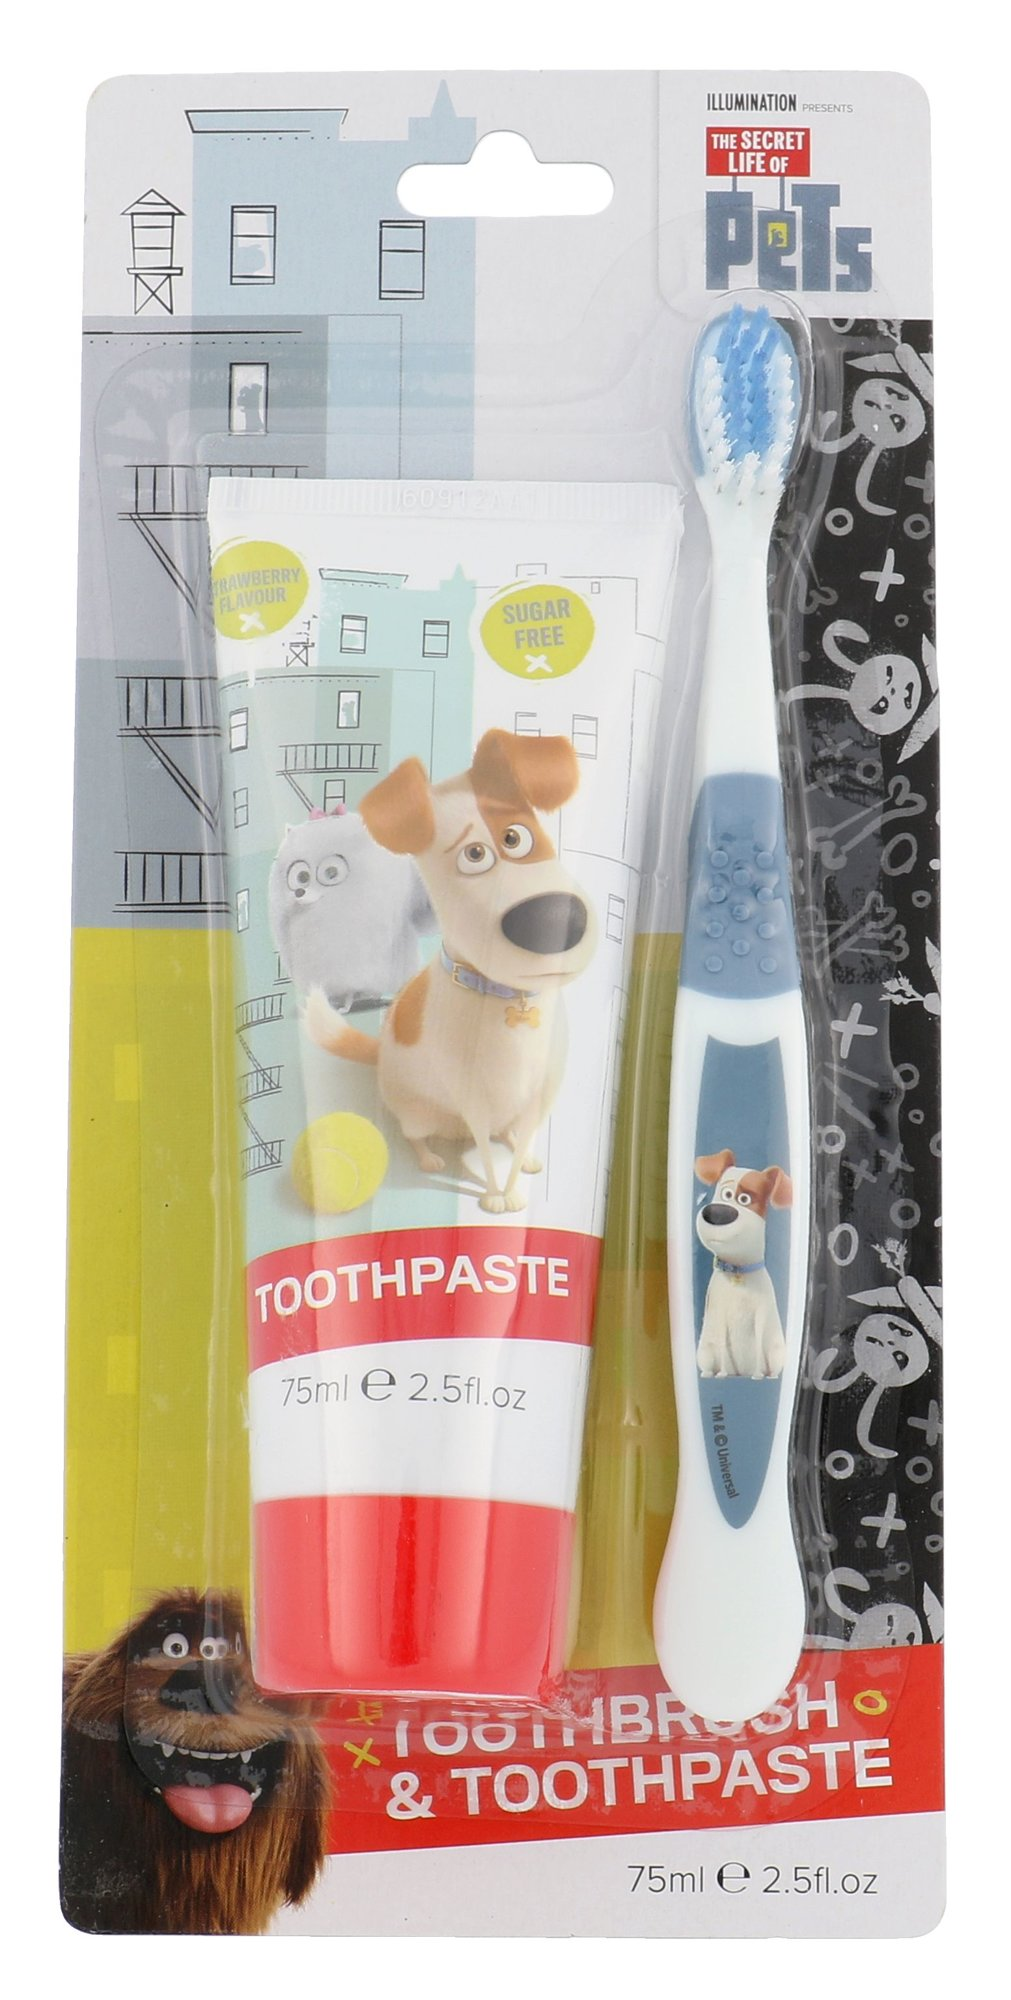 Universal The Secret Life Of Pets Toothpaste Duo Kit Cosmetic 75ml